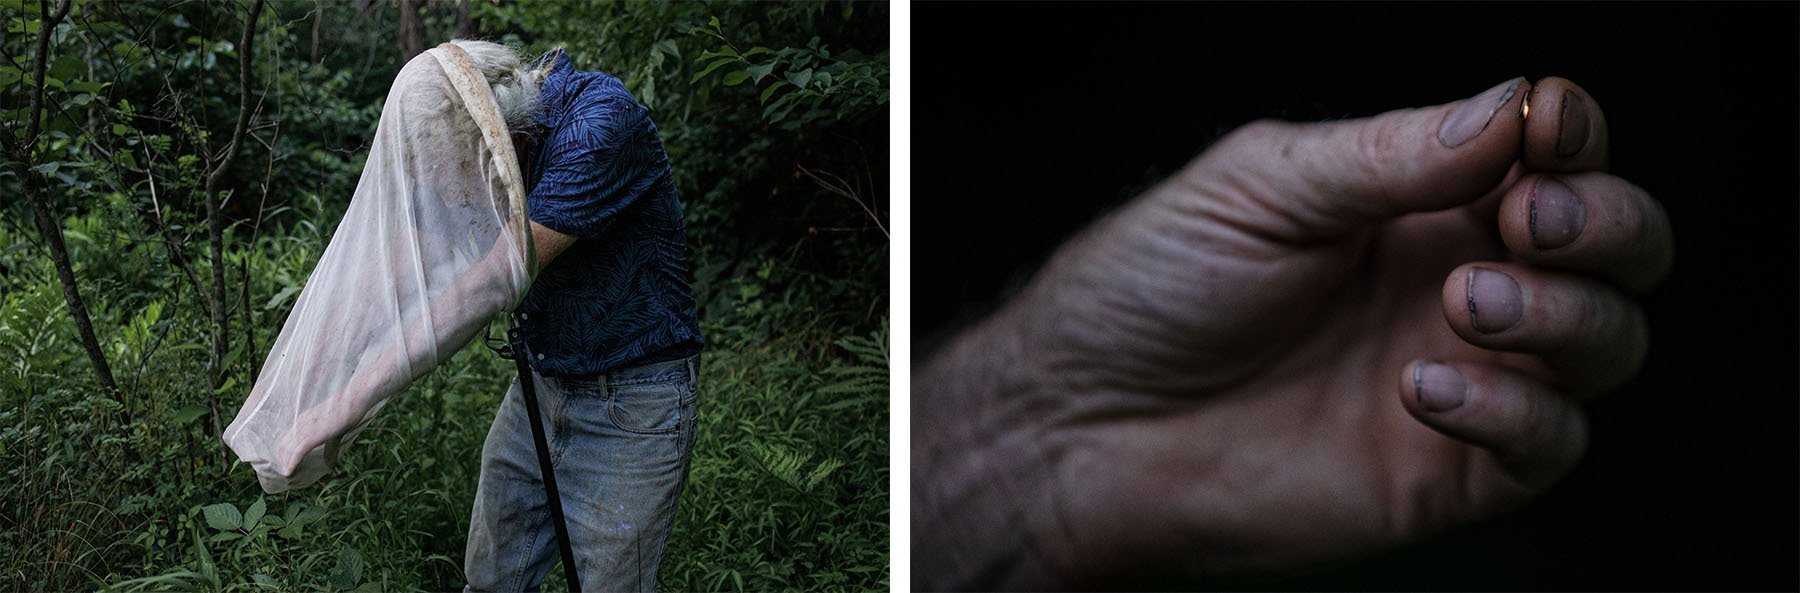 (Left) Sam Droege digs through his bug net. (Right) Close up of a male firefly.